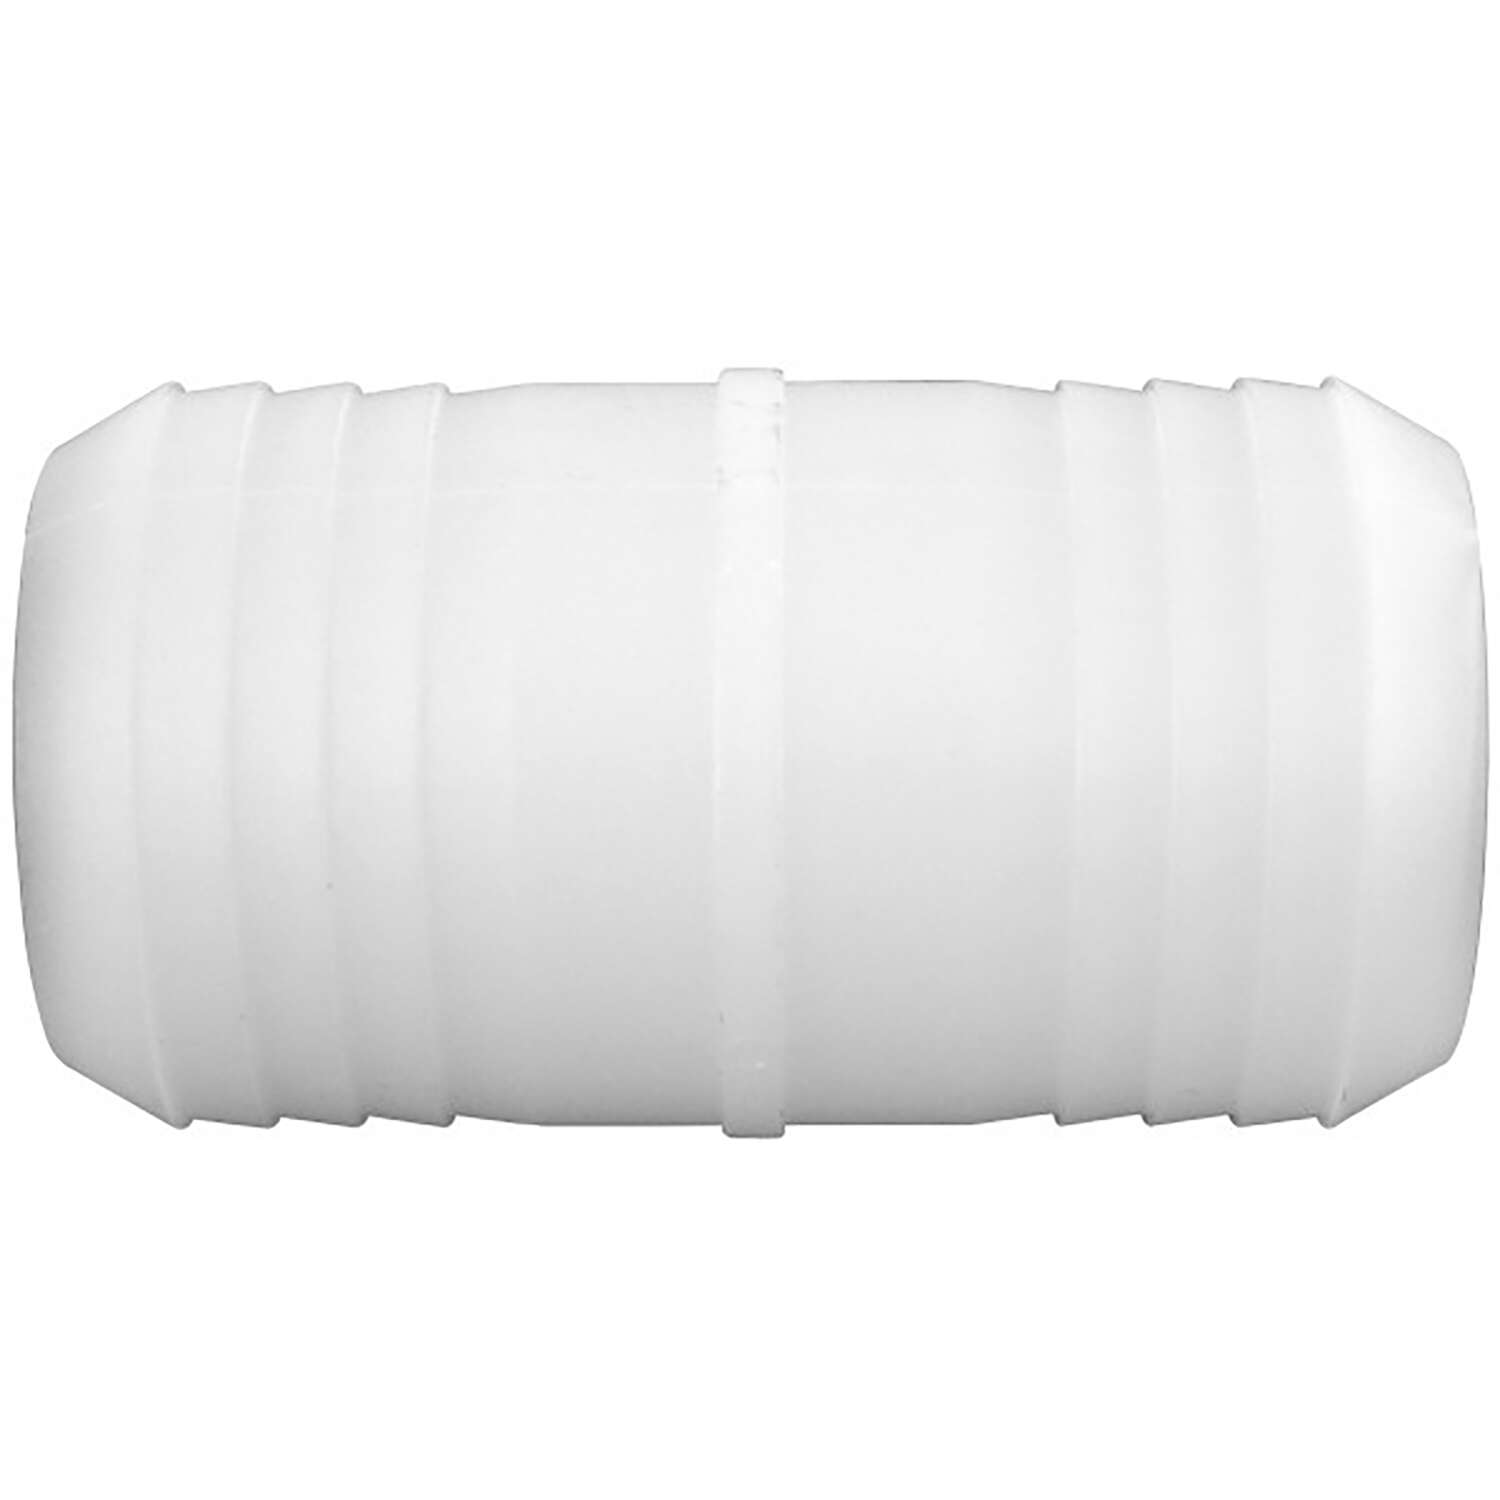 Green Leaf  1/4 in. Barb   x 3/16 in. Dia. Barb  Nylon  Hose Adapter